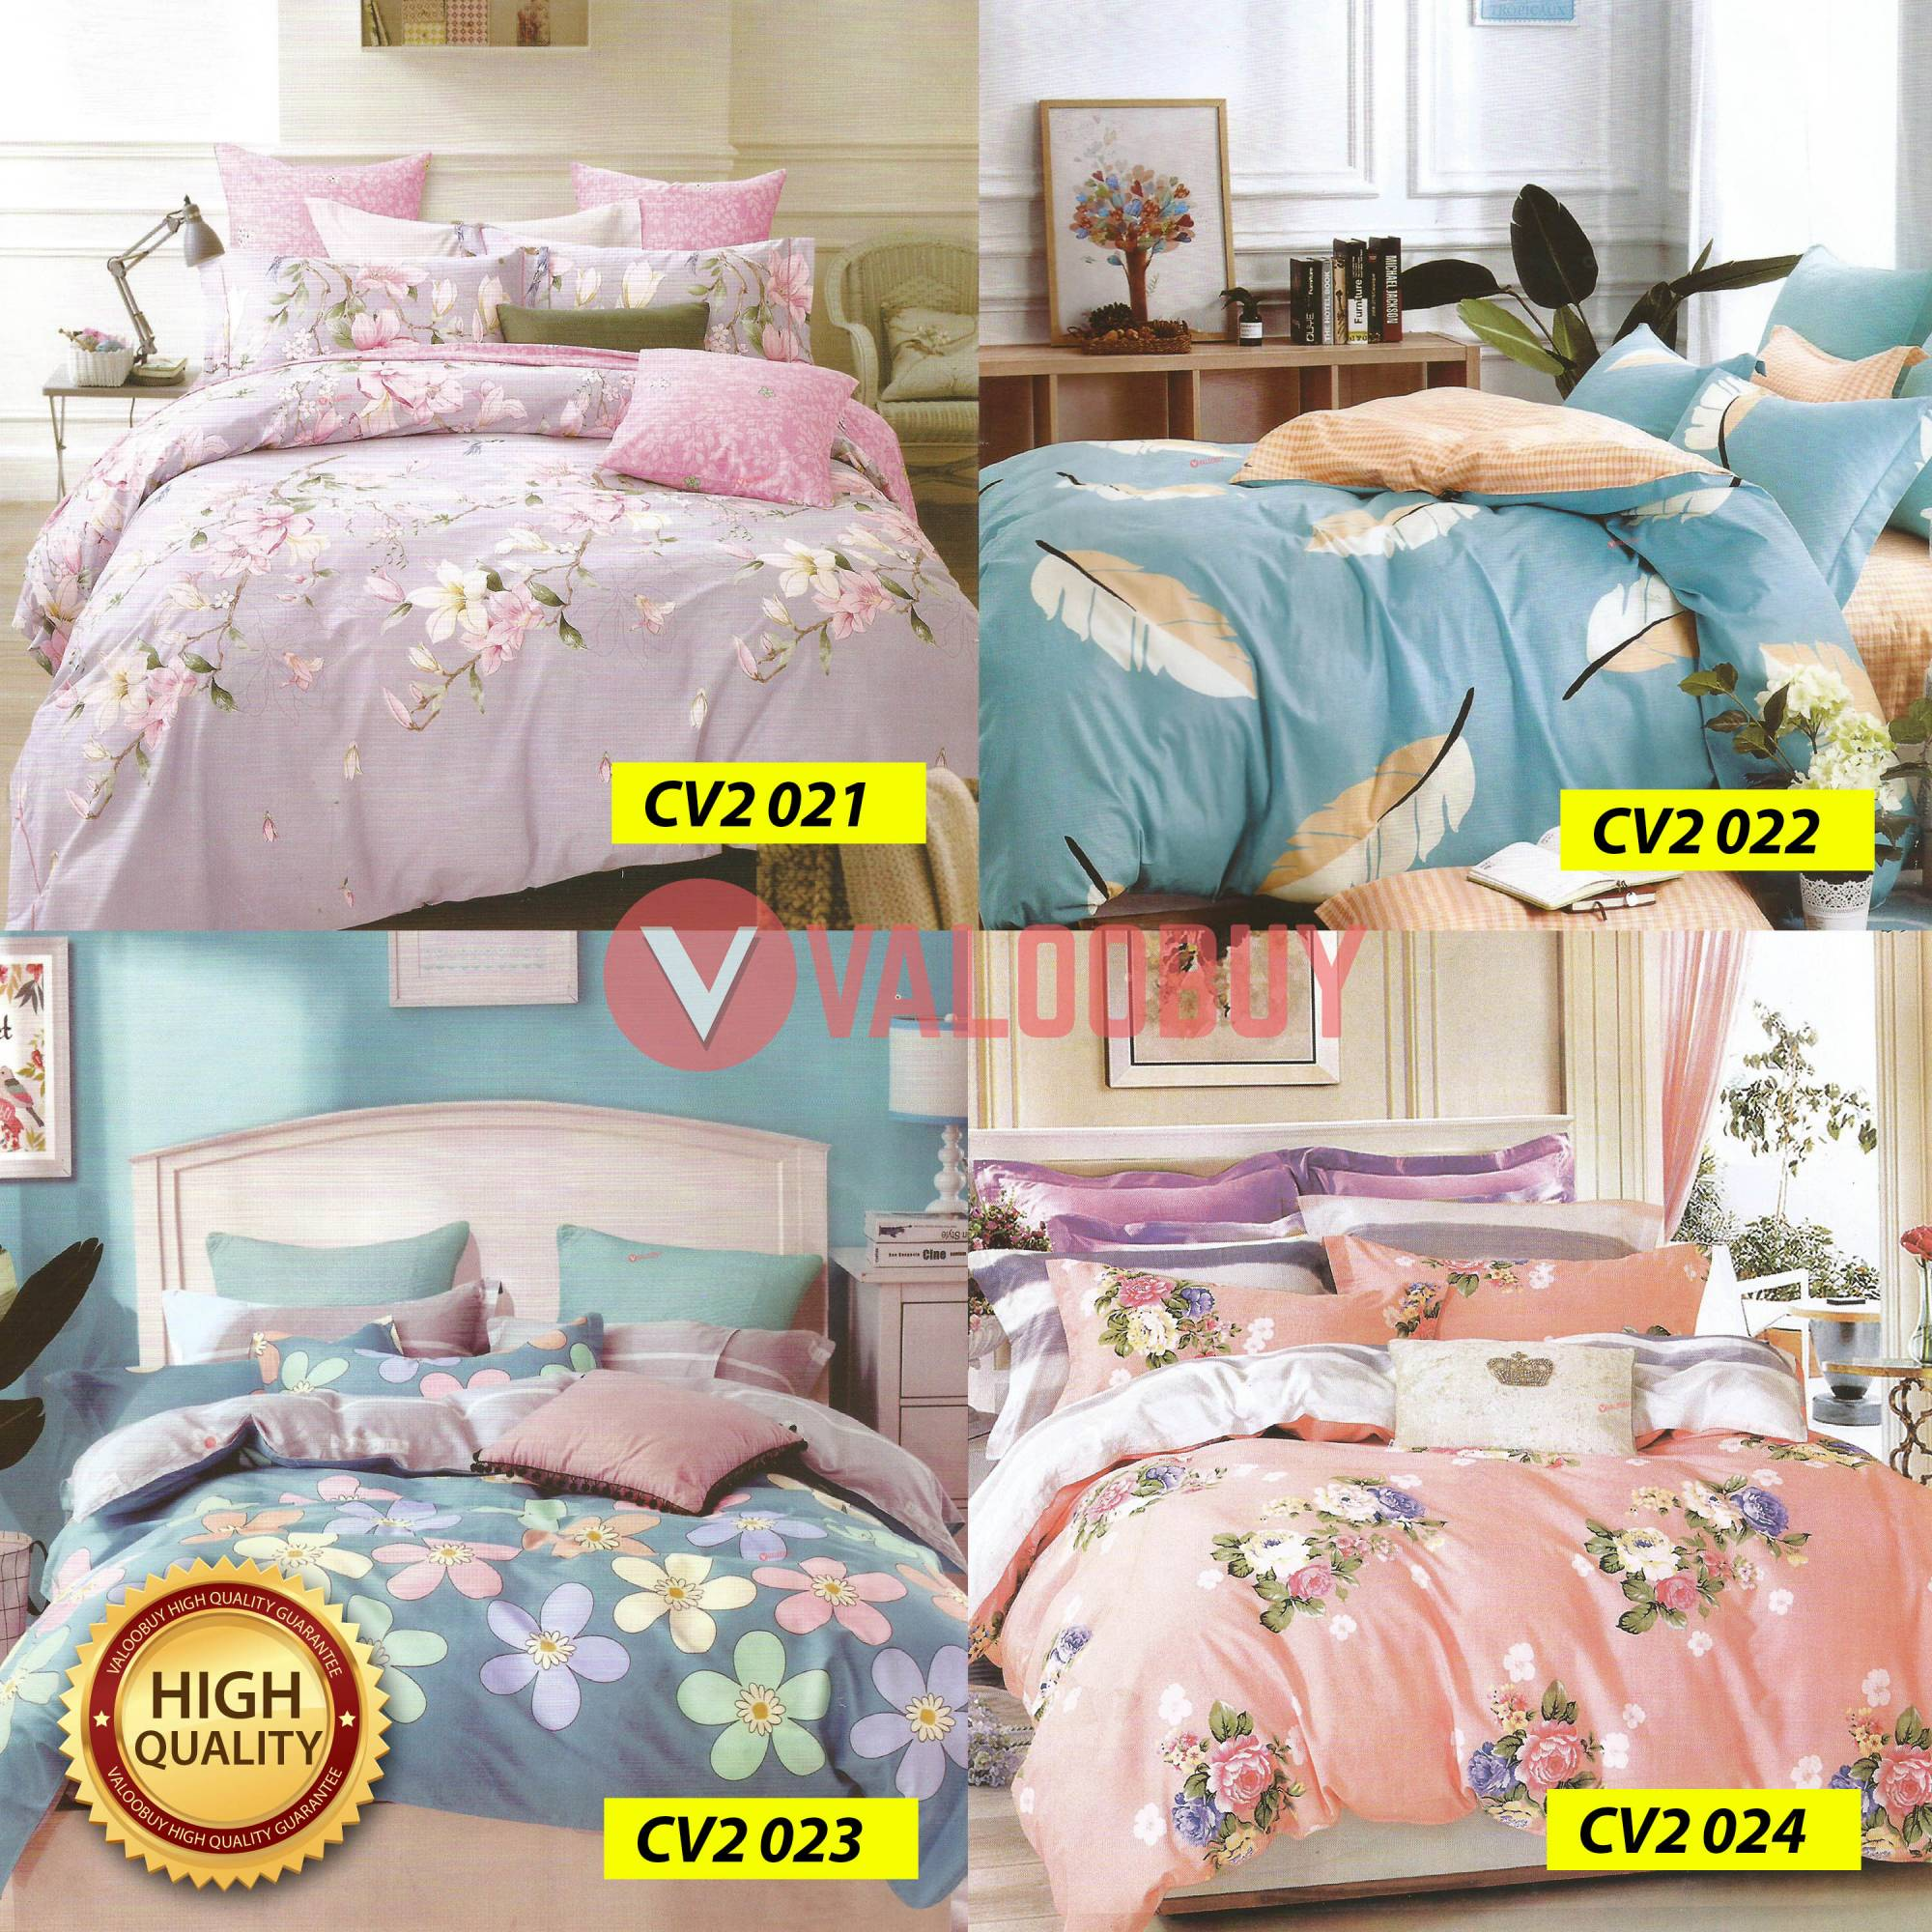 Cadar Valoobuy - 4 in 1 High Quality Bedsheet Cotton for King/Queen